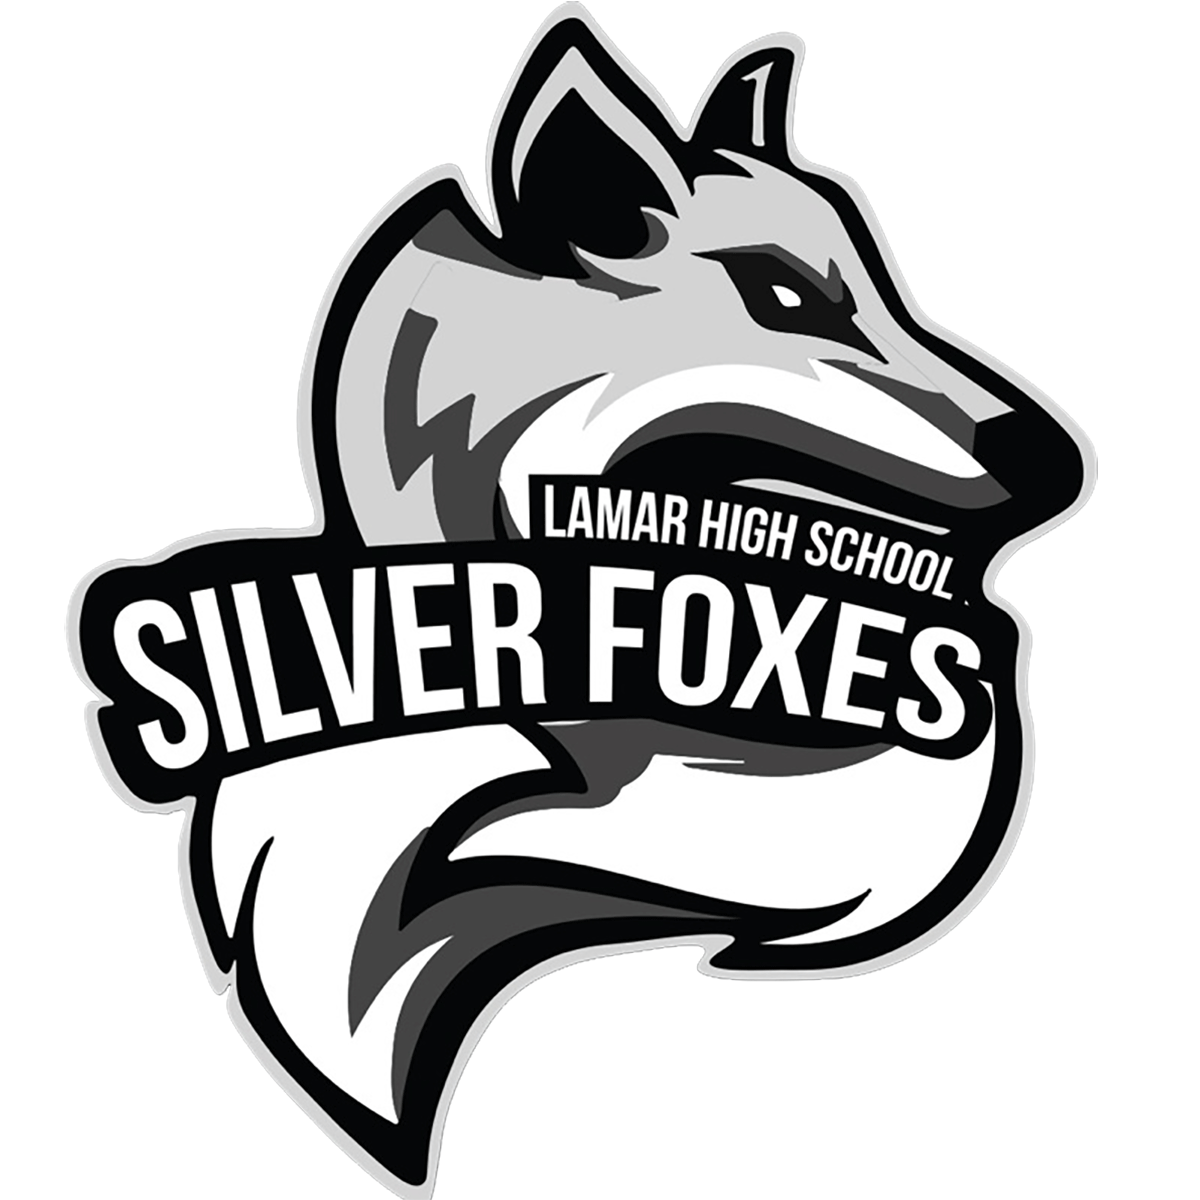 Tickets for Silver Foxes vs. C A Johnson